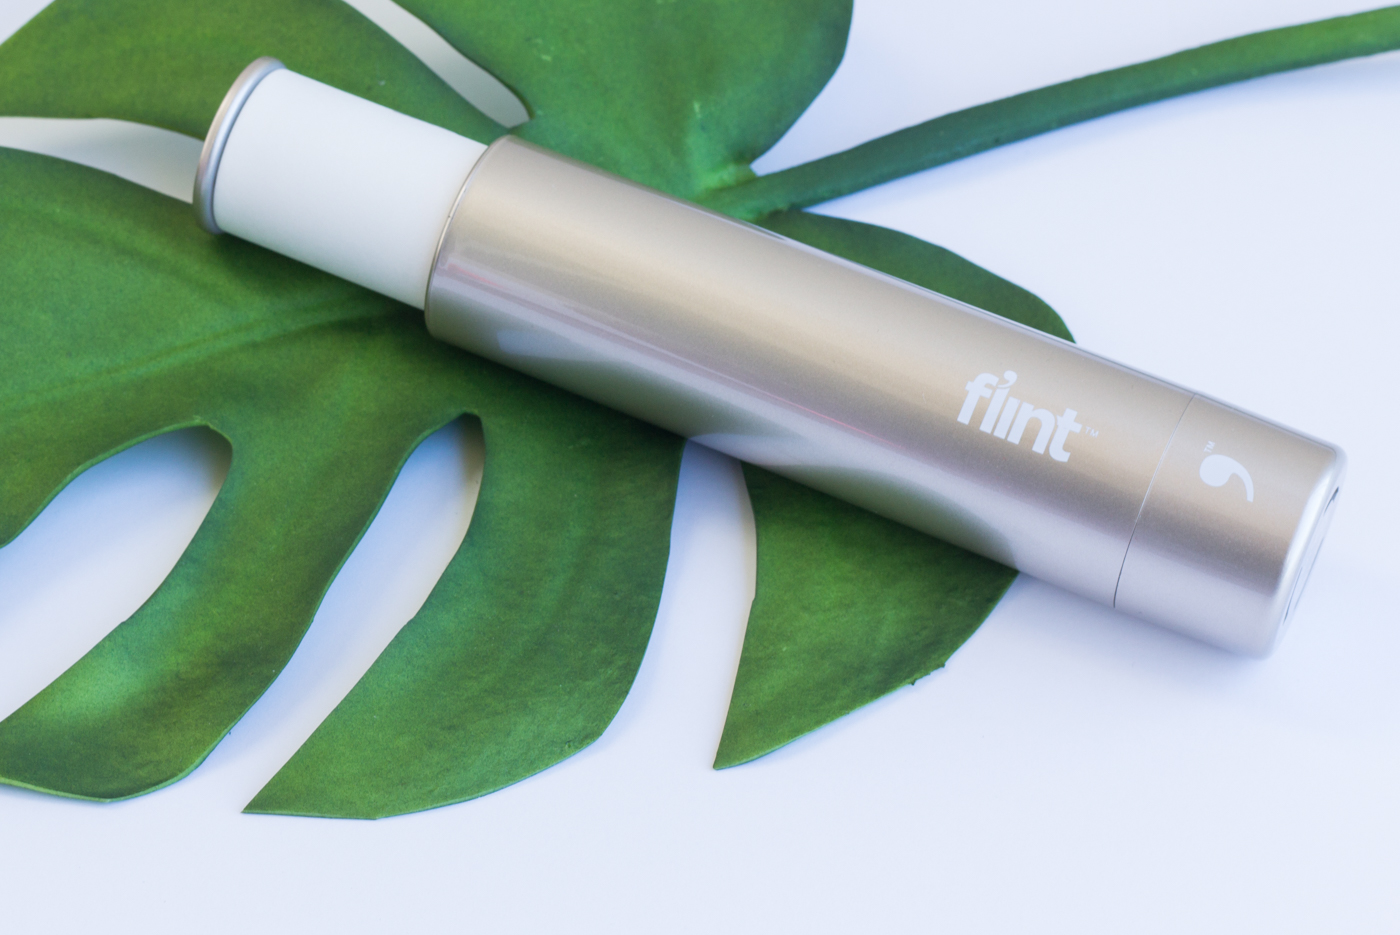 Flint Lint Roller | The Chic Diary